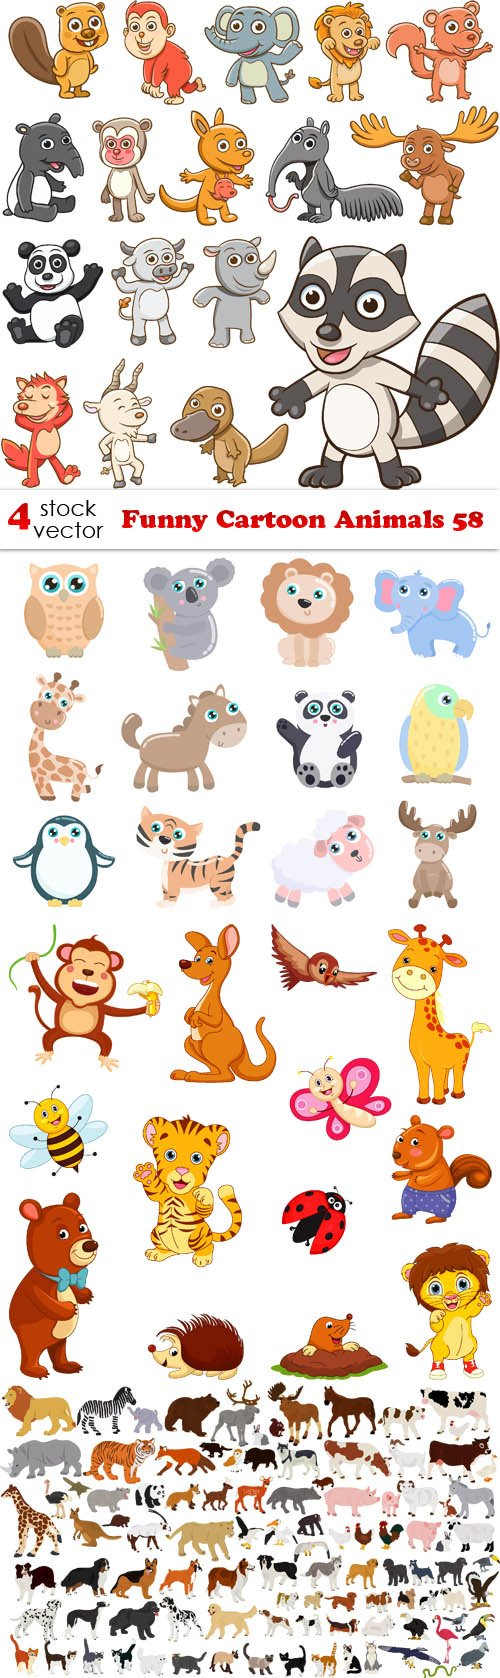 Vectors - Funny Cartoon Animals 58